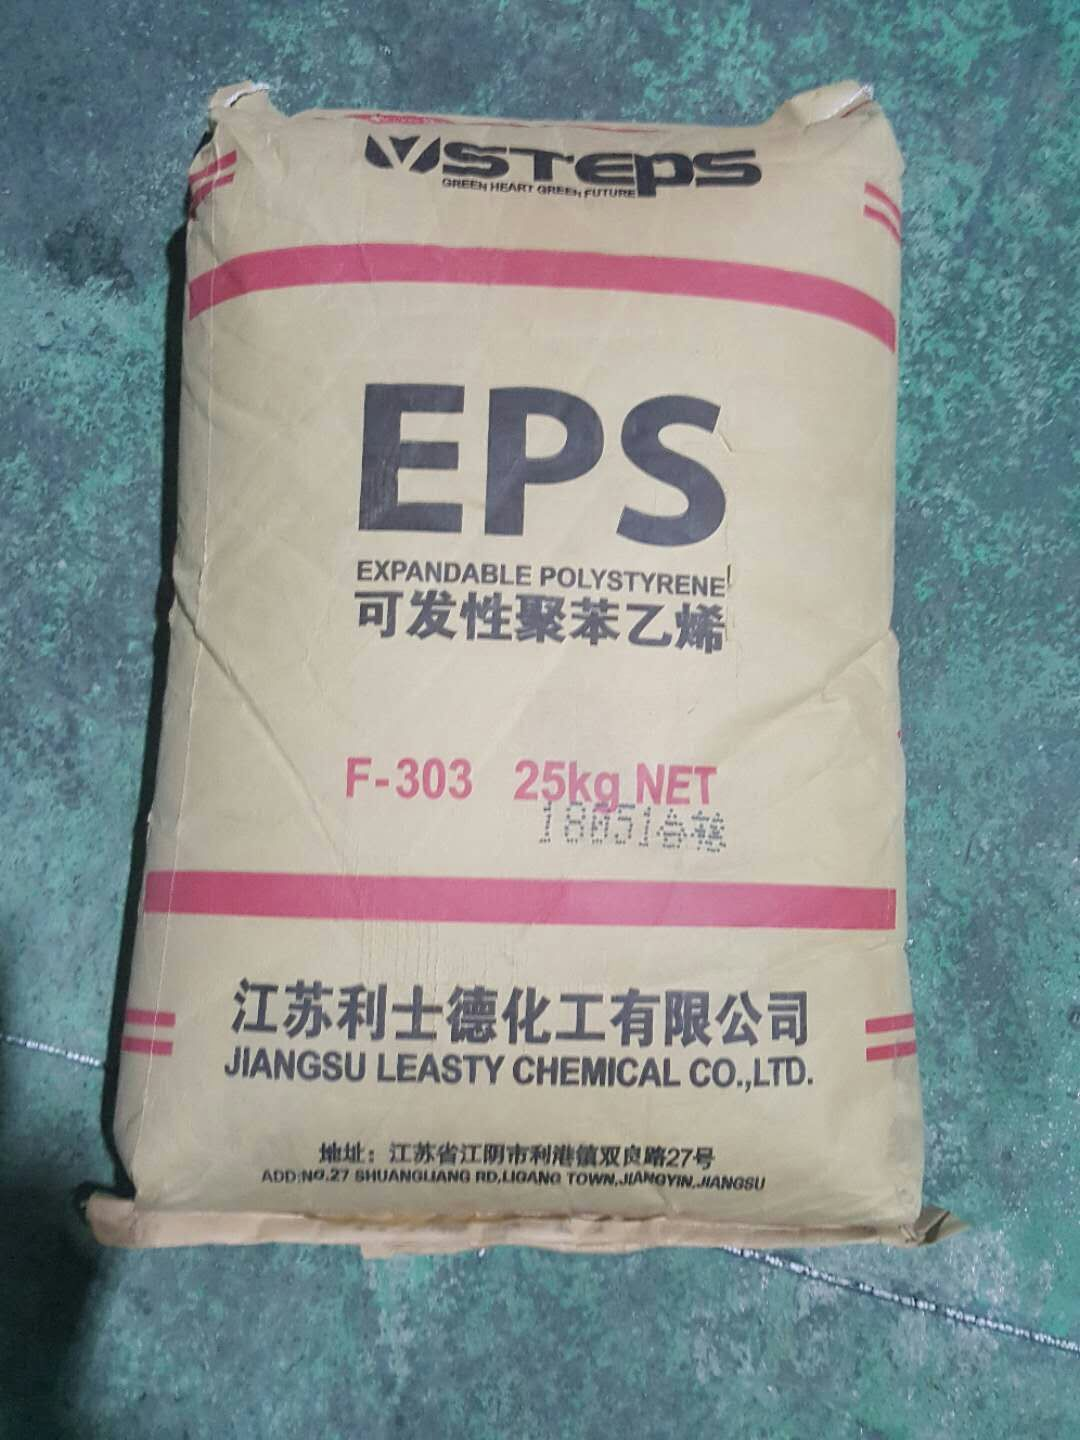 SELL flame extuinguishing / flame retardant eps material for eps turnkey plant